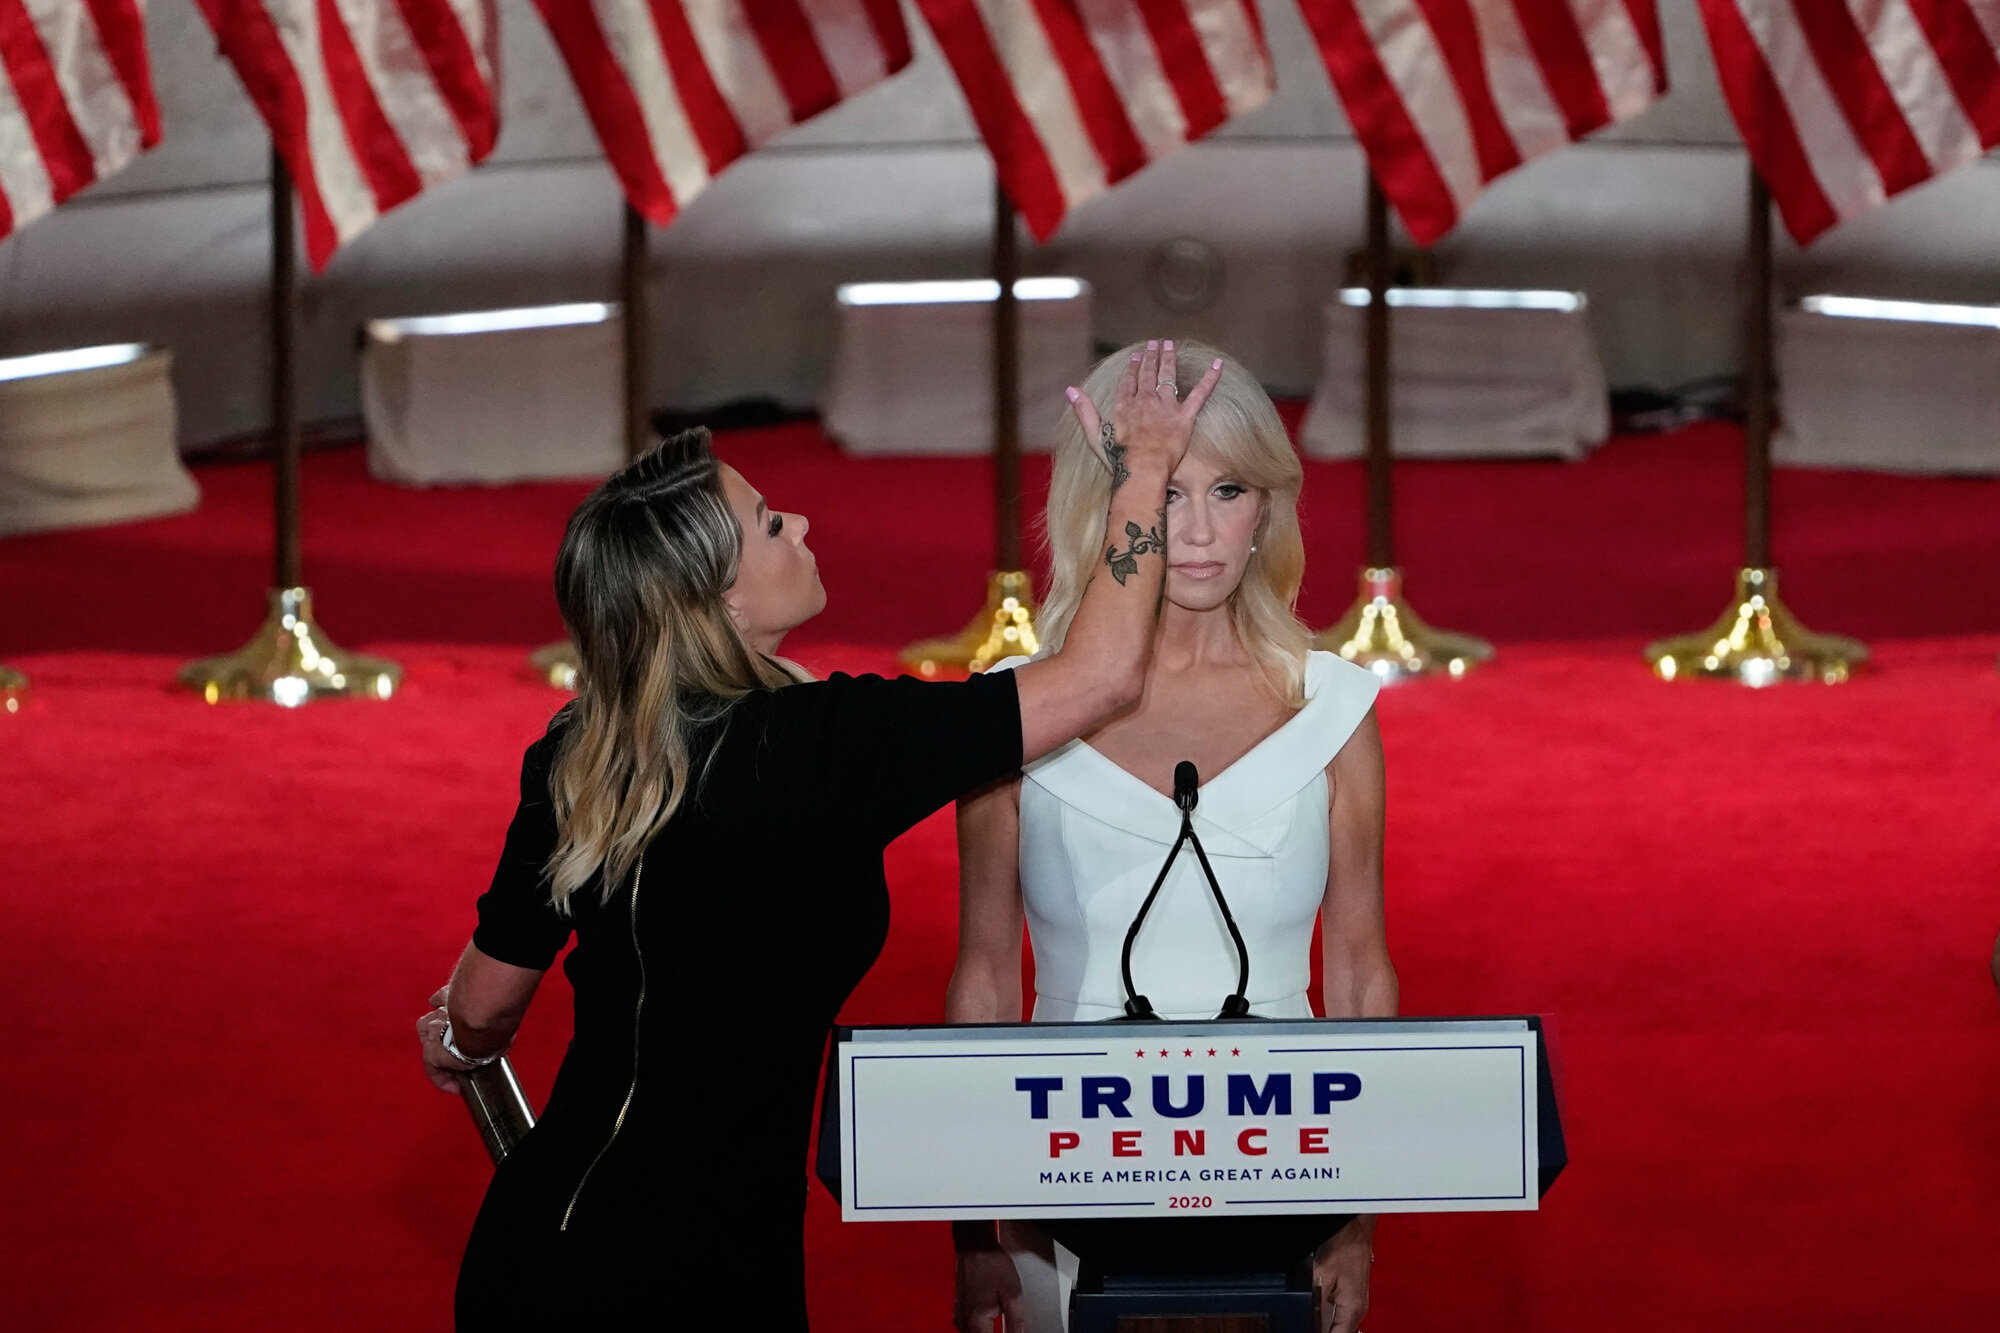 White House counselor Kellyanne Conway prepares to tape her speech for the third day of the Republican National Convention in Washington on Aug. 26, 2020. (AP Photo/Susan Walsh)